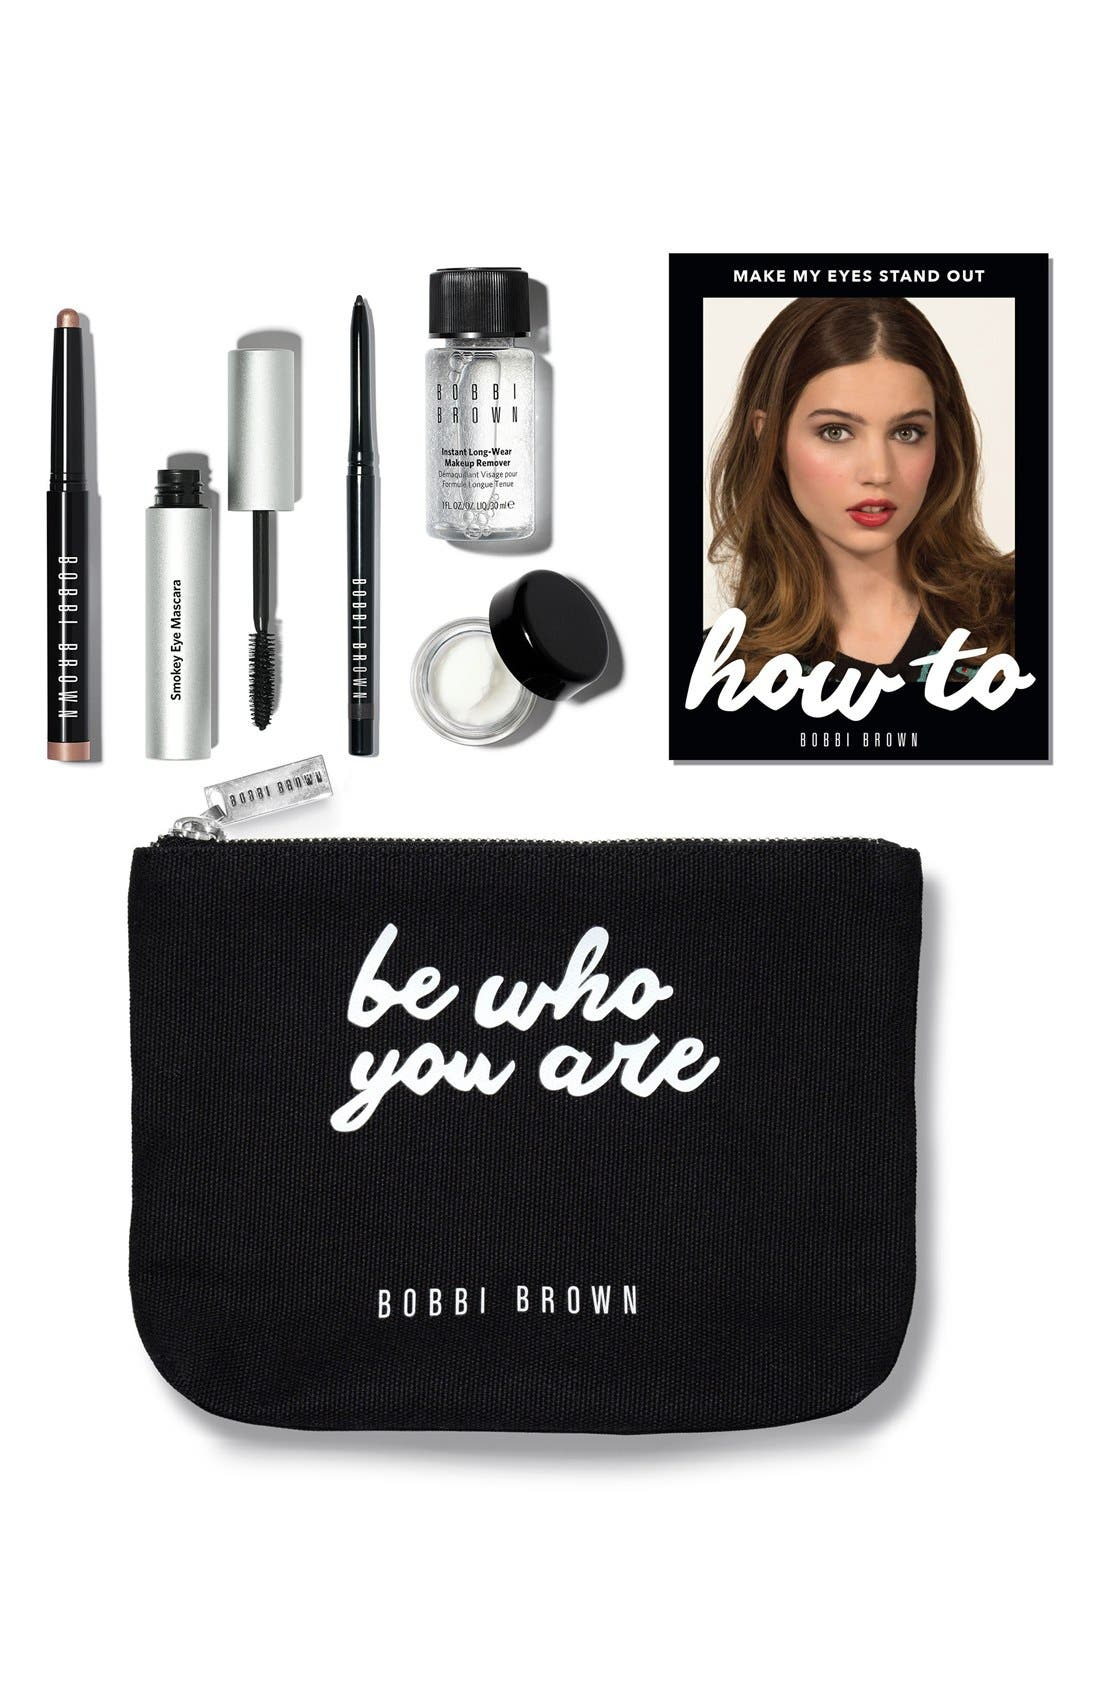 Bobbi Brown 'Be Who You Are - Make My Eyes Stand Out' Collection (Nordstrom Exclusive) ($117 Value)